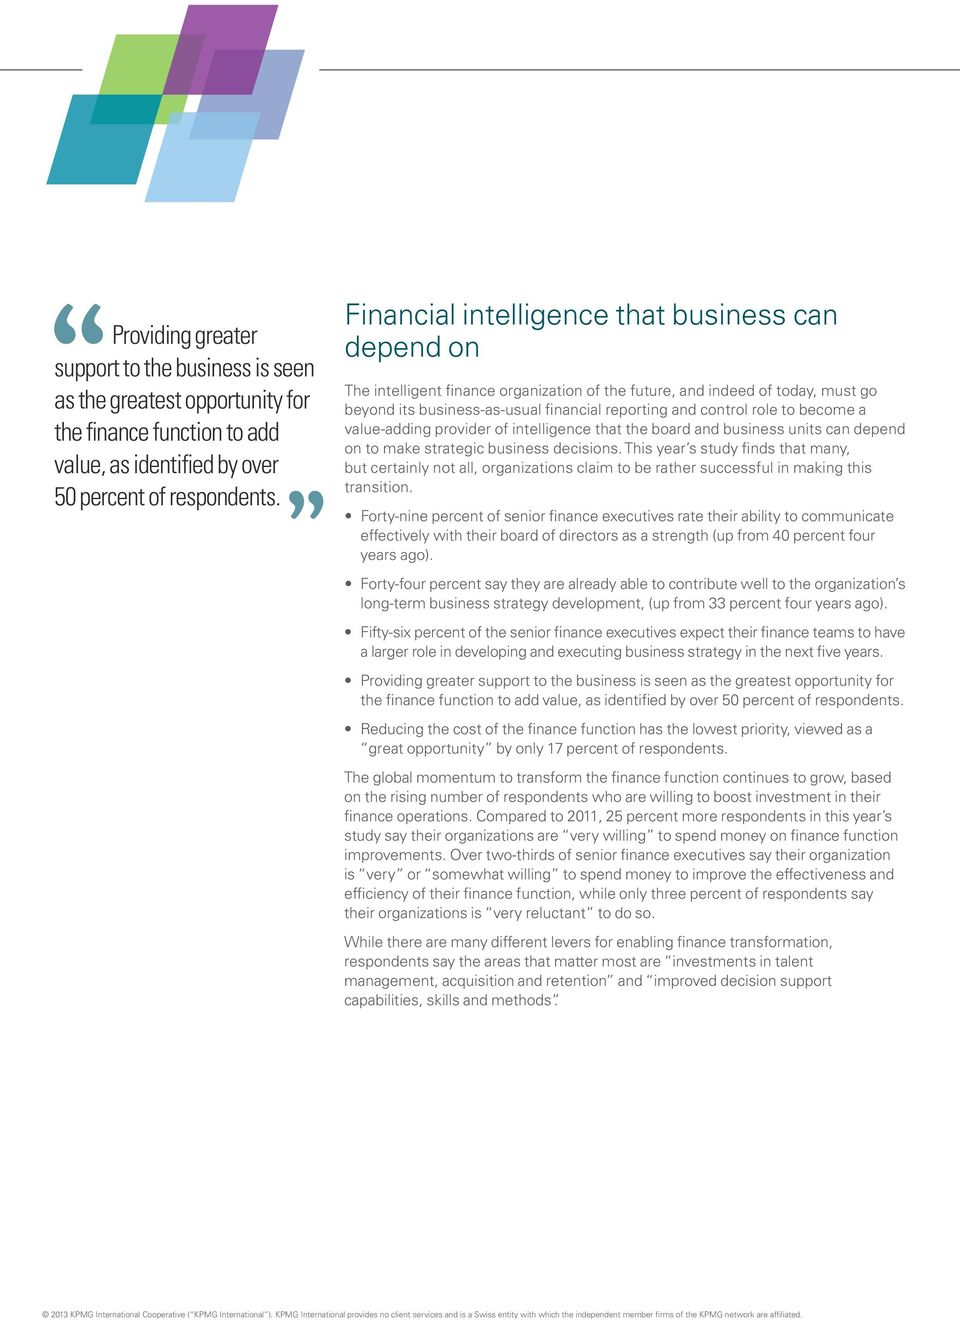 to become a value-adding provider of intelligence that the board and business units can depend on to make strategic business decisions.